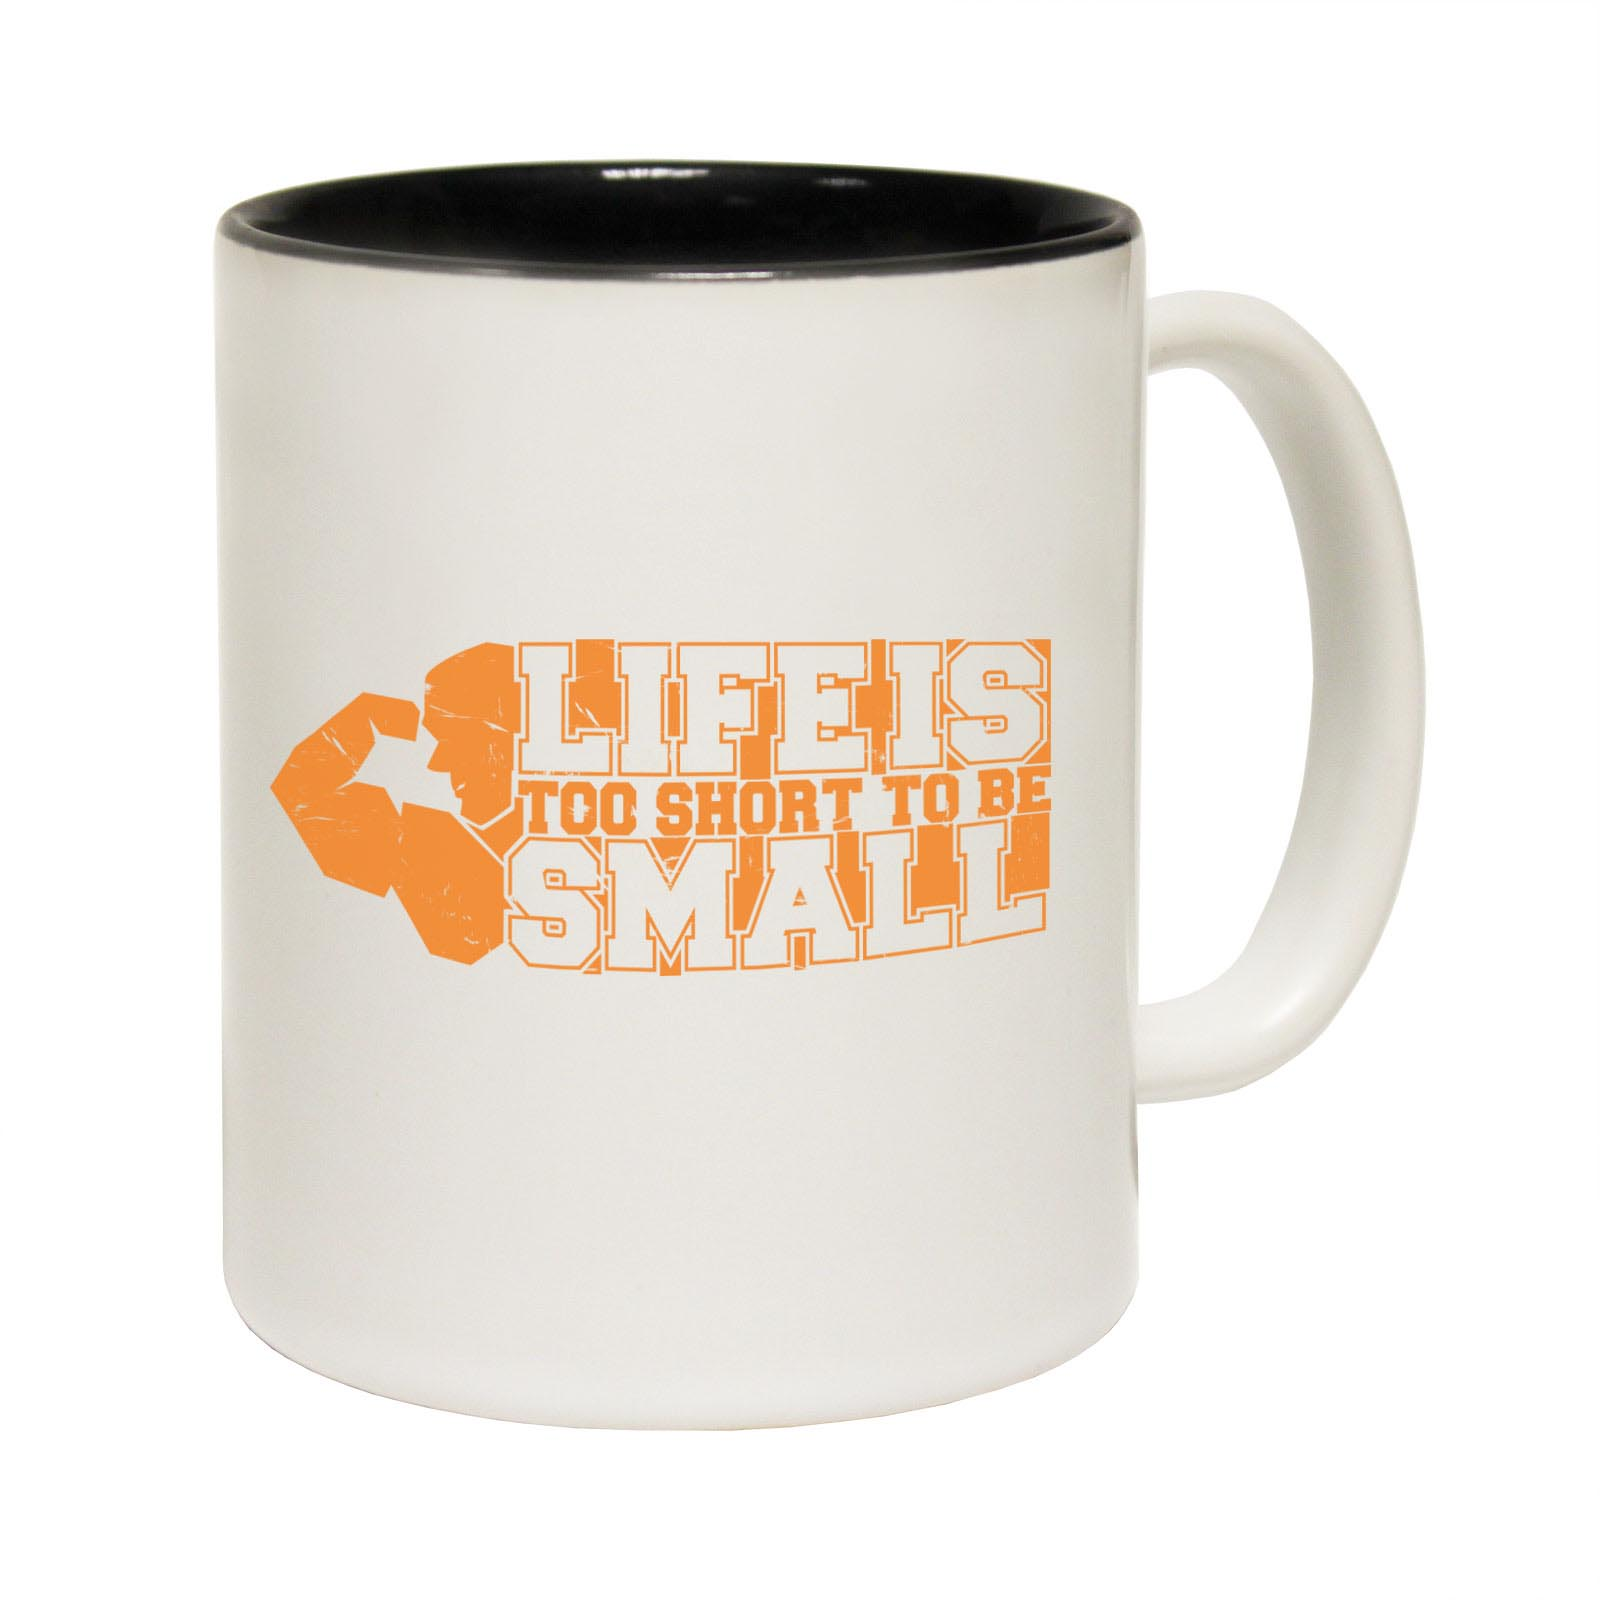 miniature 4 - Funny Coffee Mug Novelty Birthday Gift Swps Life Is Short To Be Small